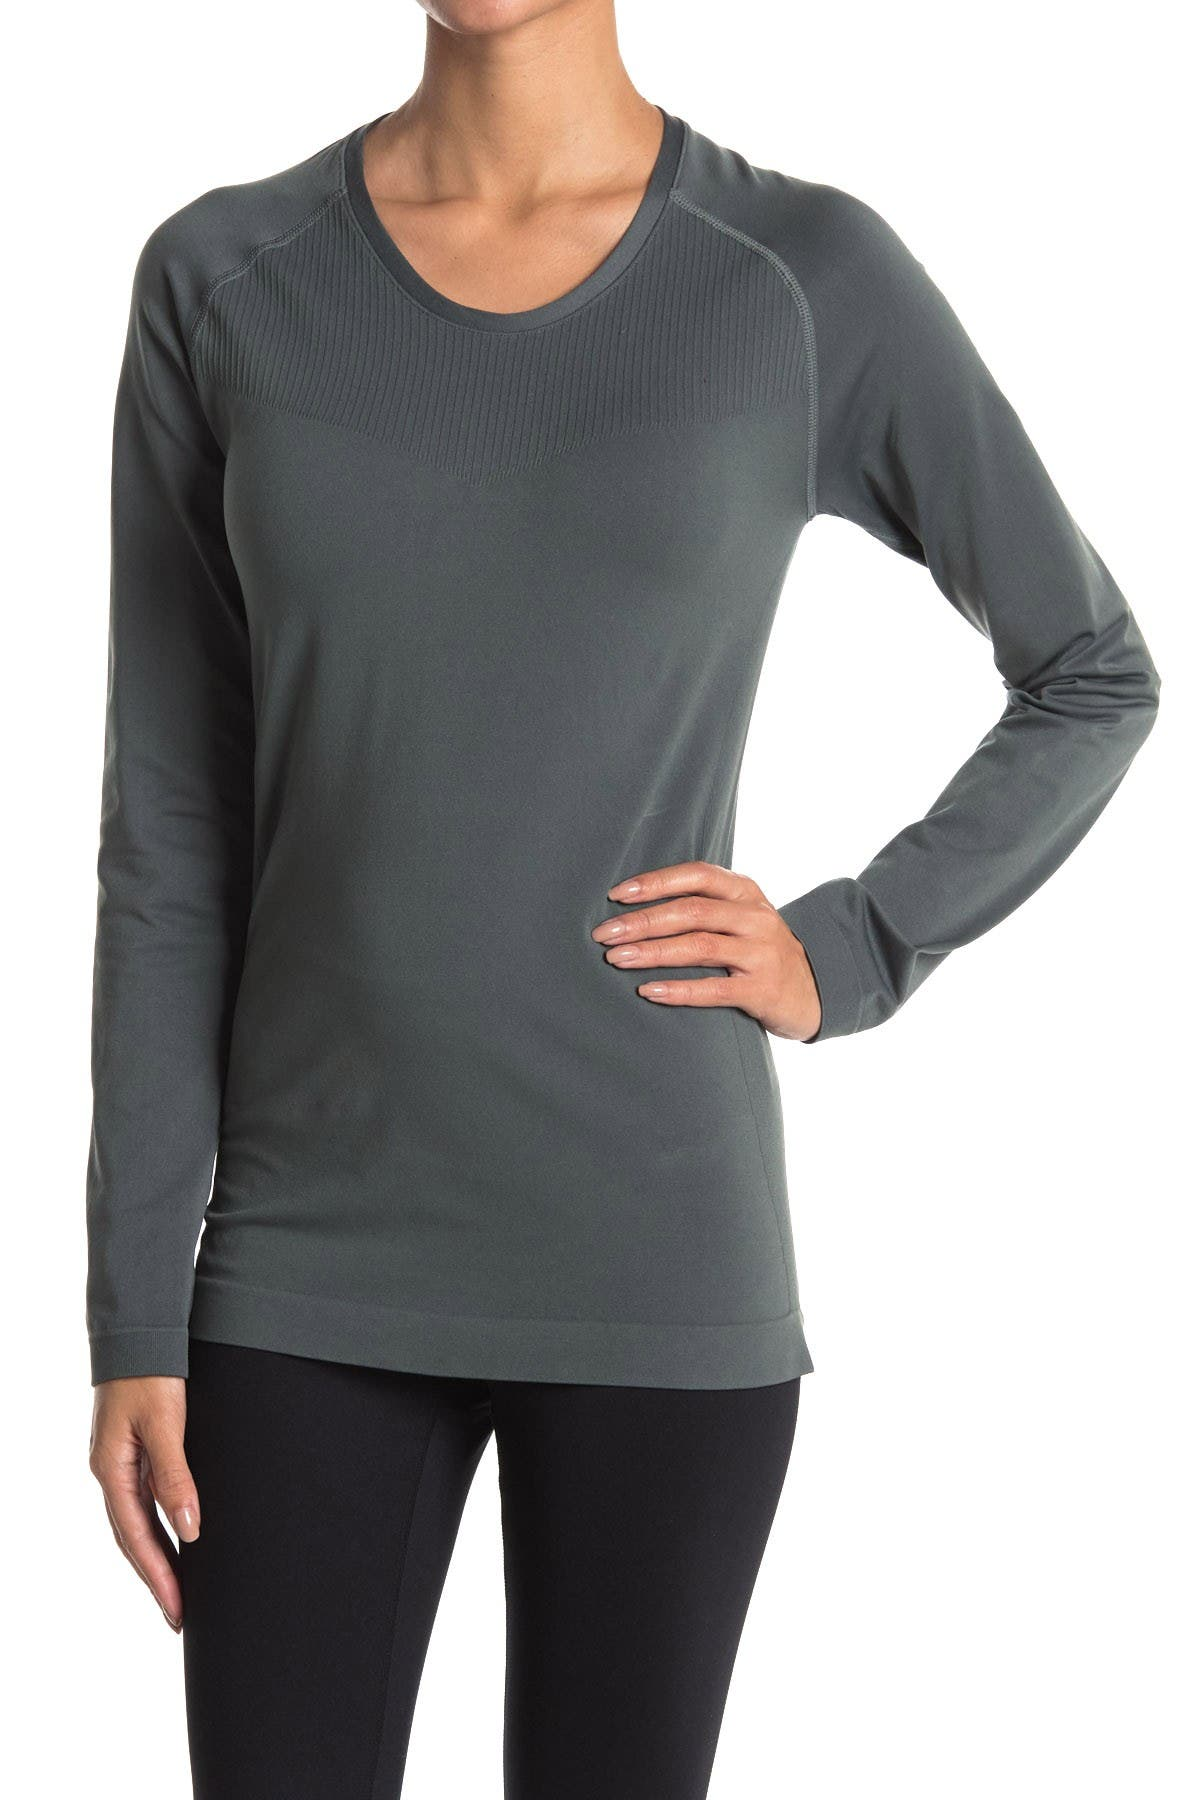 Image of Z By Zella Meridian Seamless Long Sleeve T-Shirt